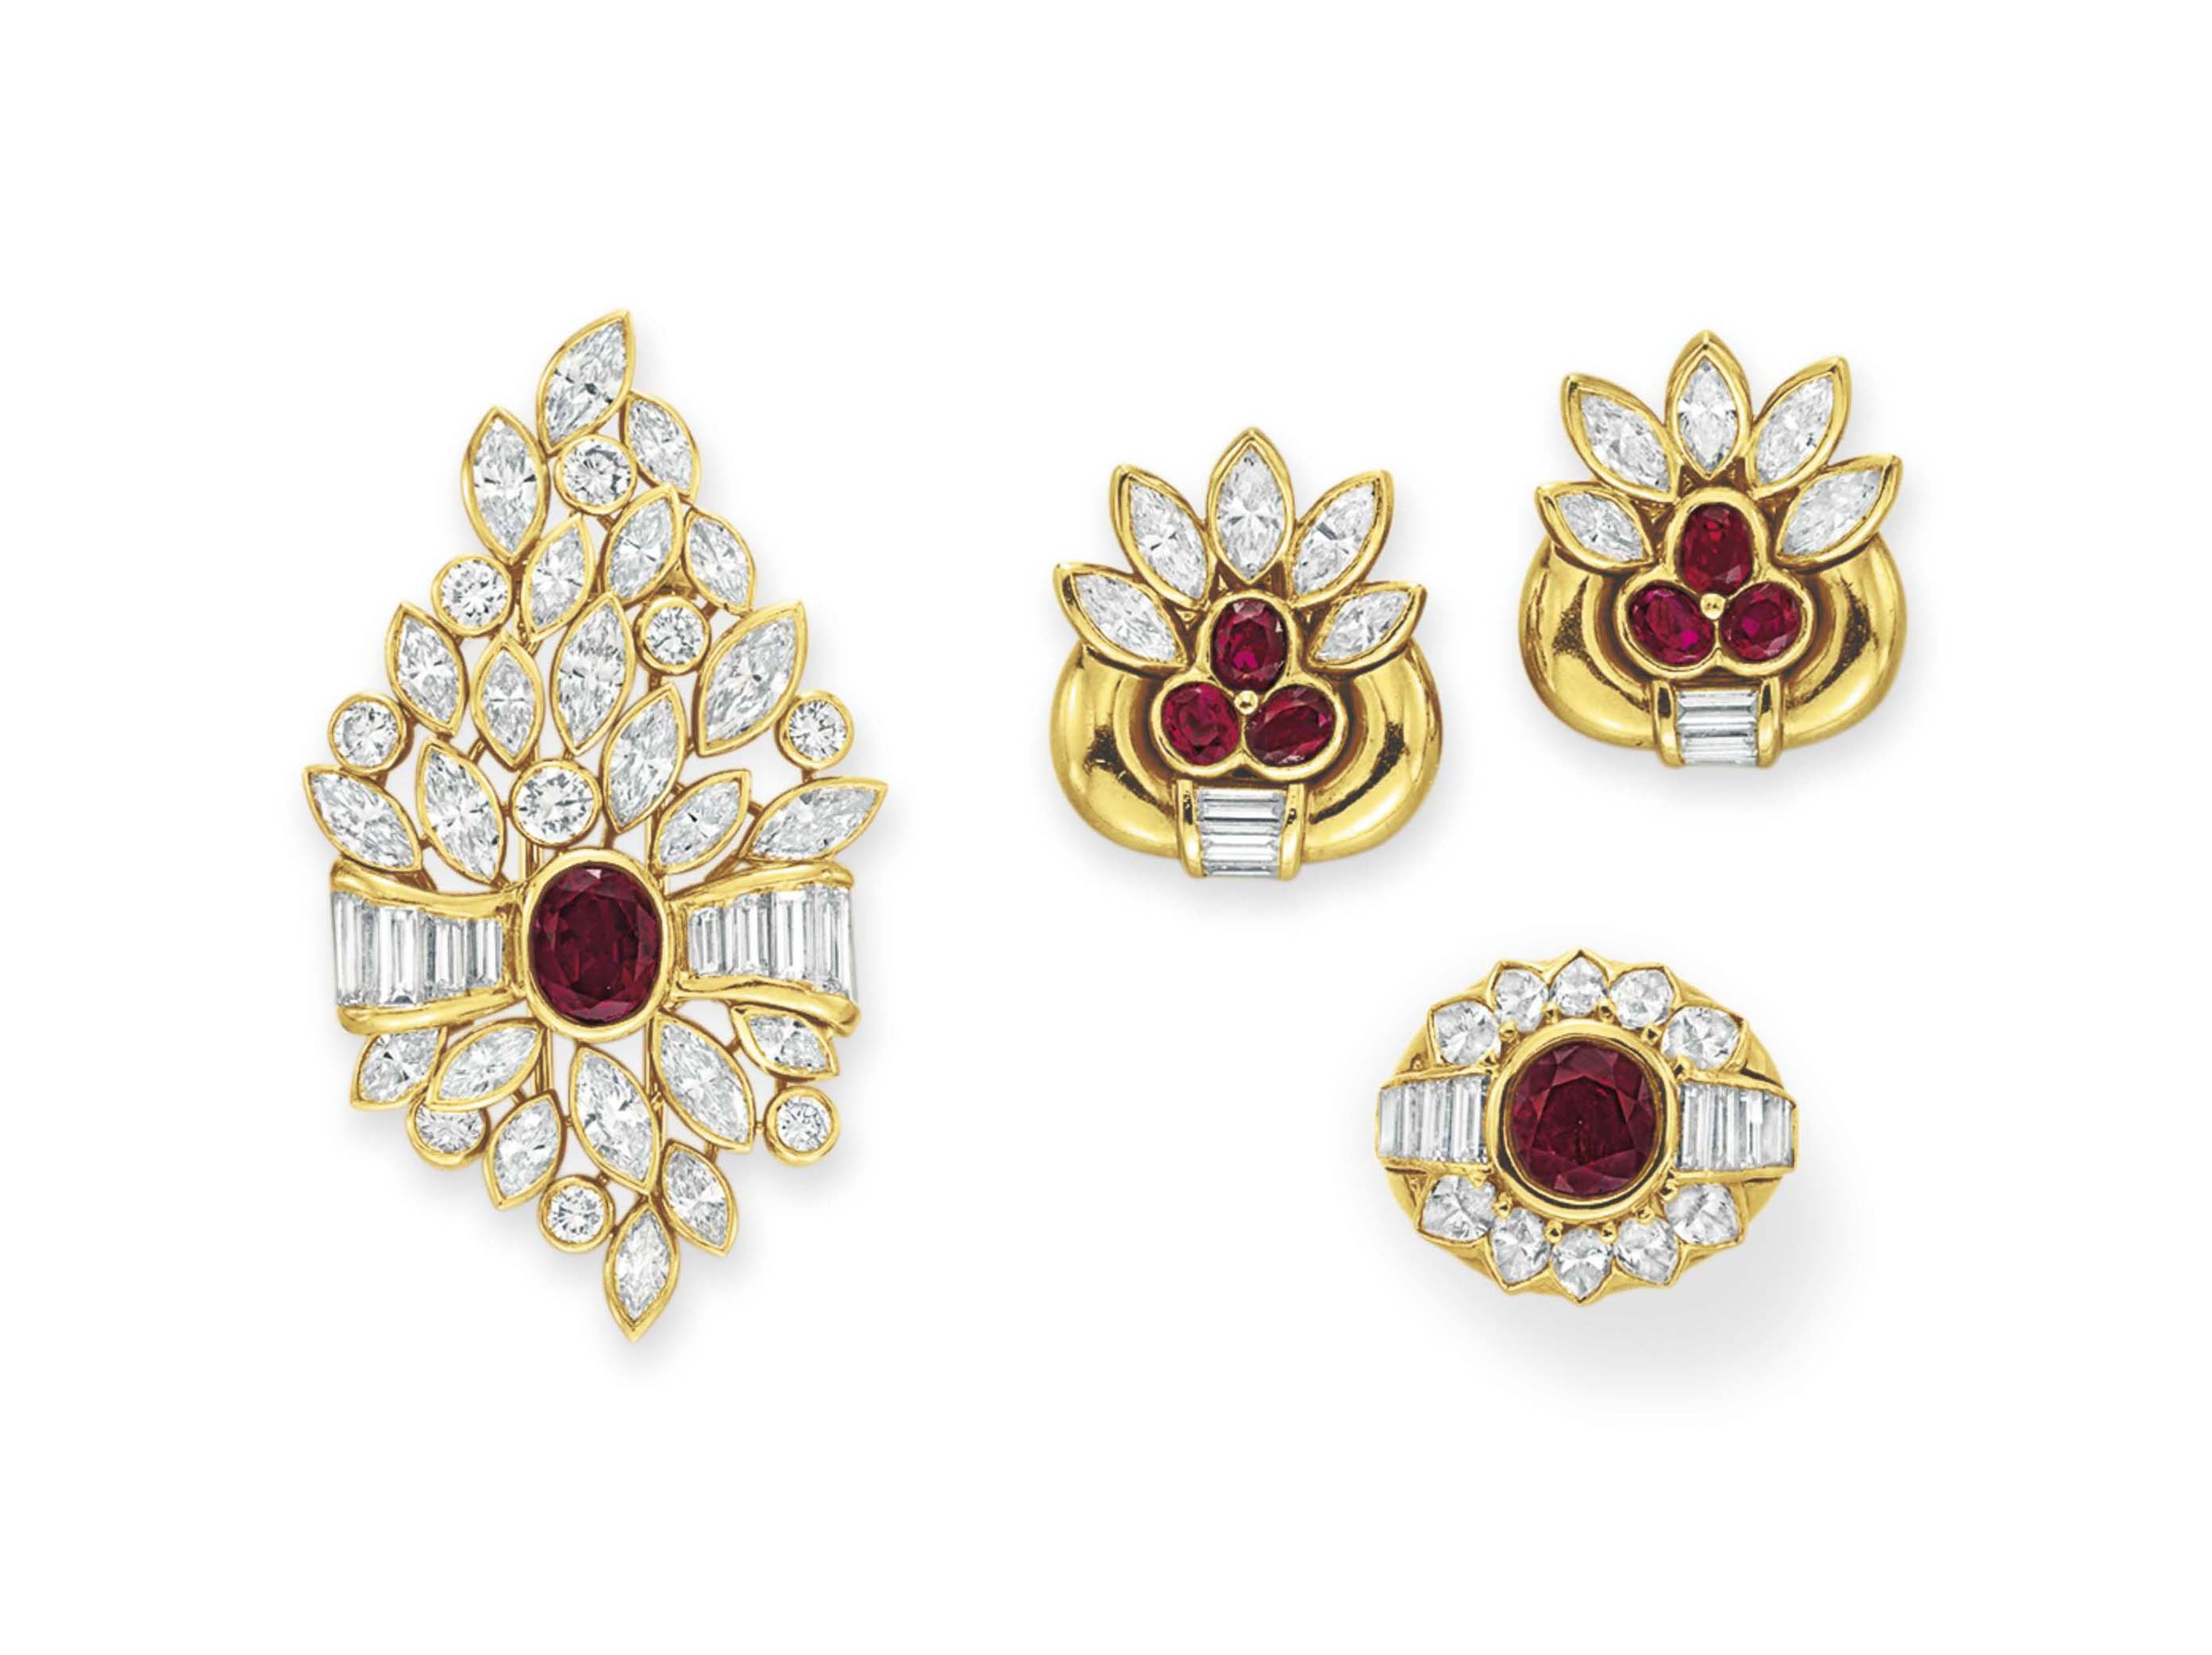 A SUITE OF DIAMOND, RUBY AND GOLD JEWELRY